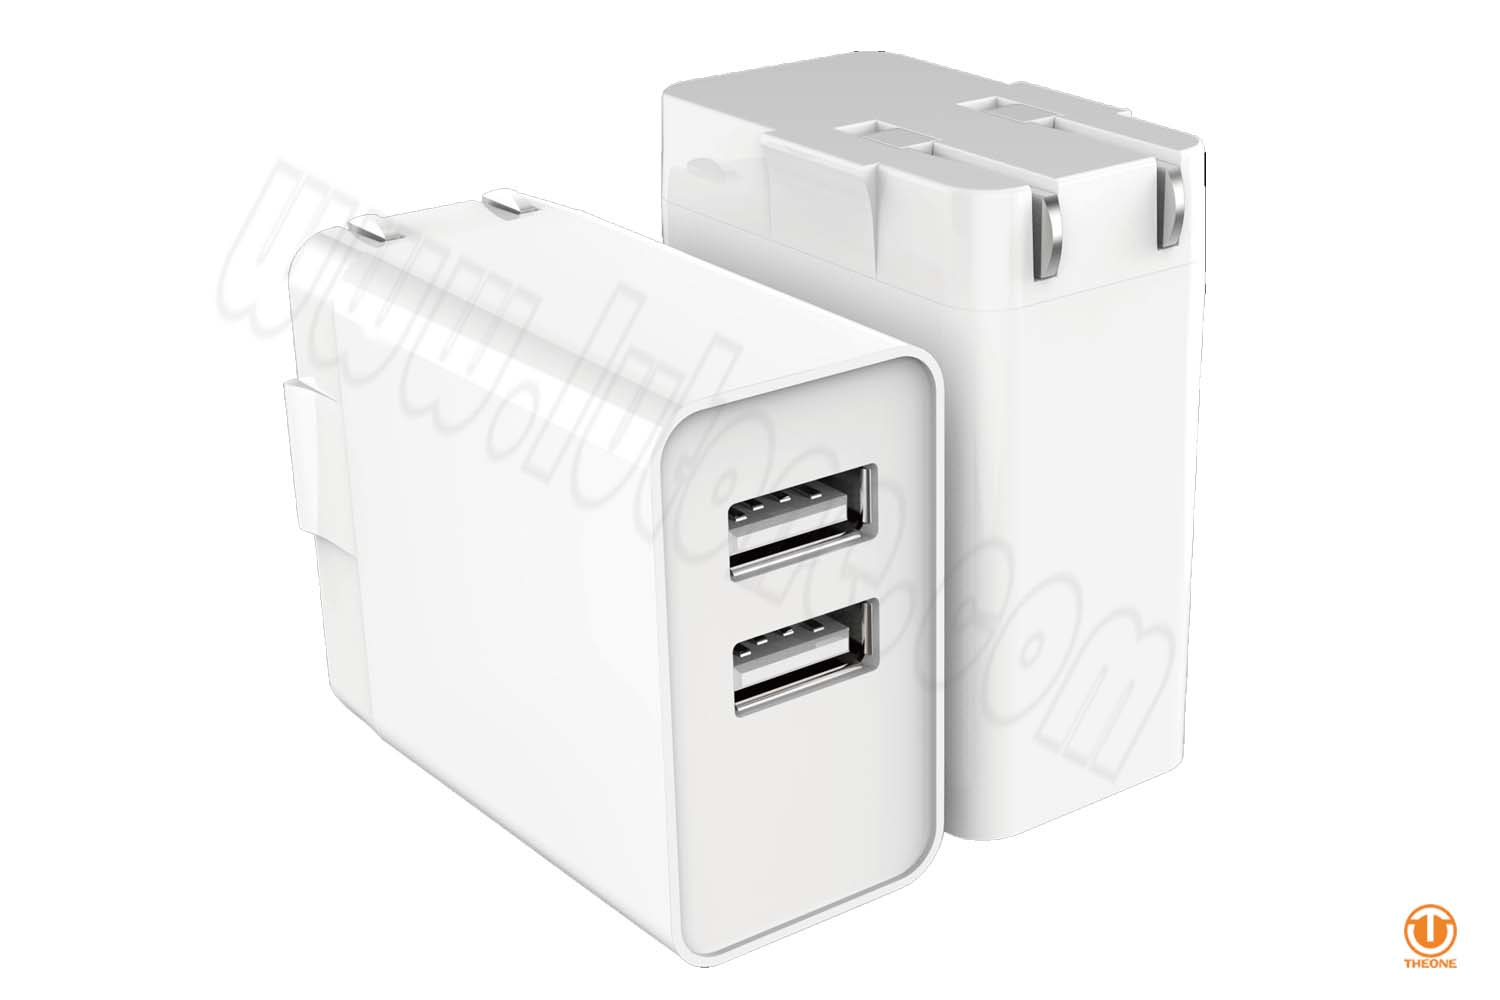 tk171-1 dual usb wall charger